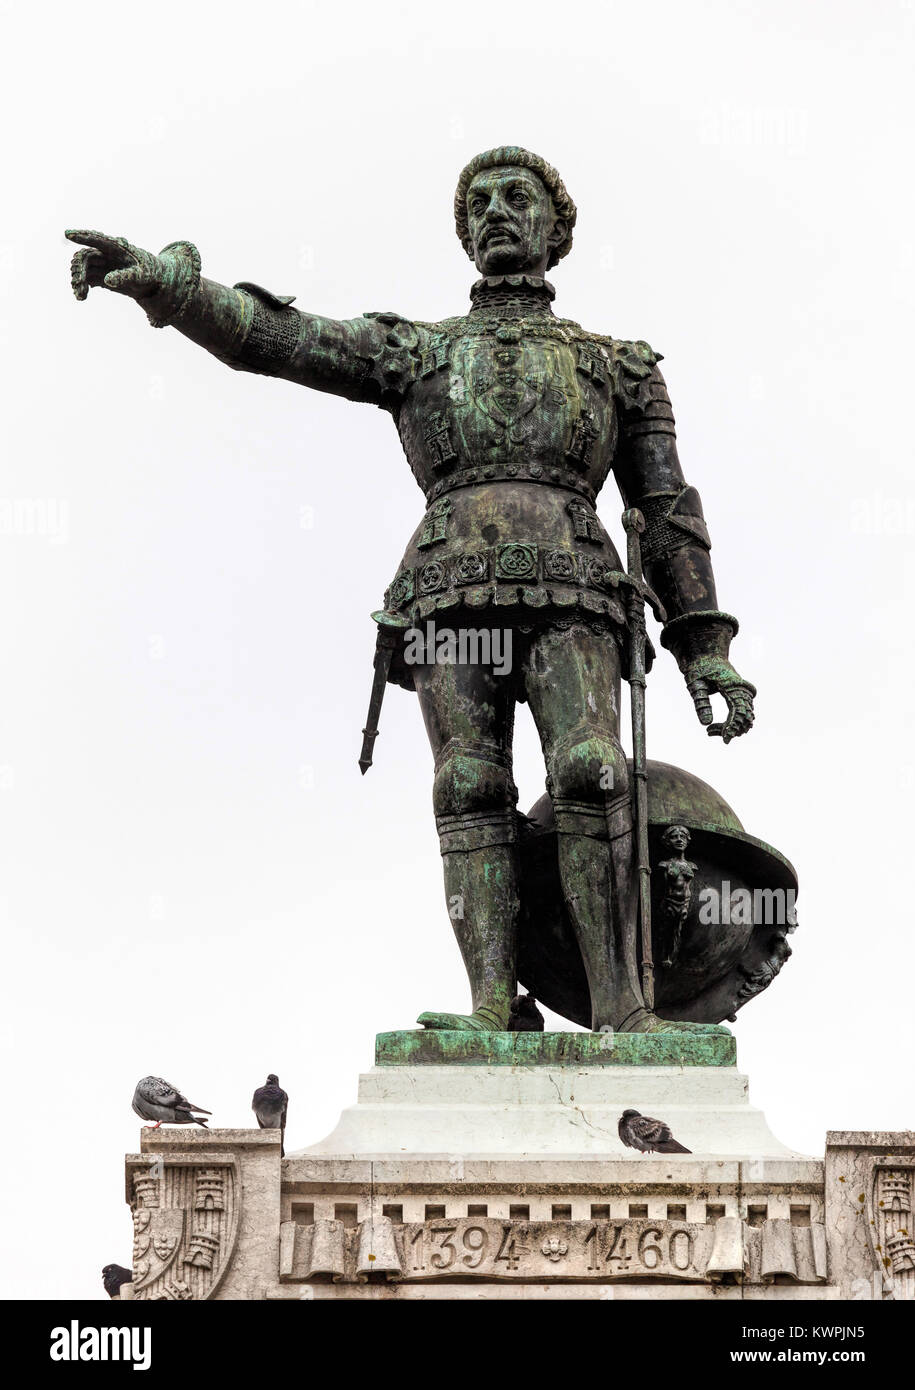 Statue of Henry the Navigator on the Infante D. Henrique square in Porto, Portugal, sculpted by Tomas Costa, started - Stock Image